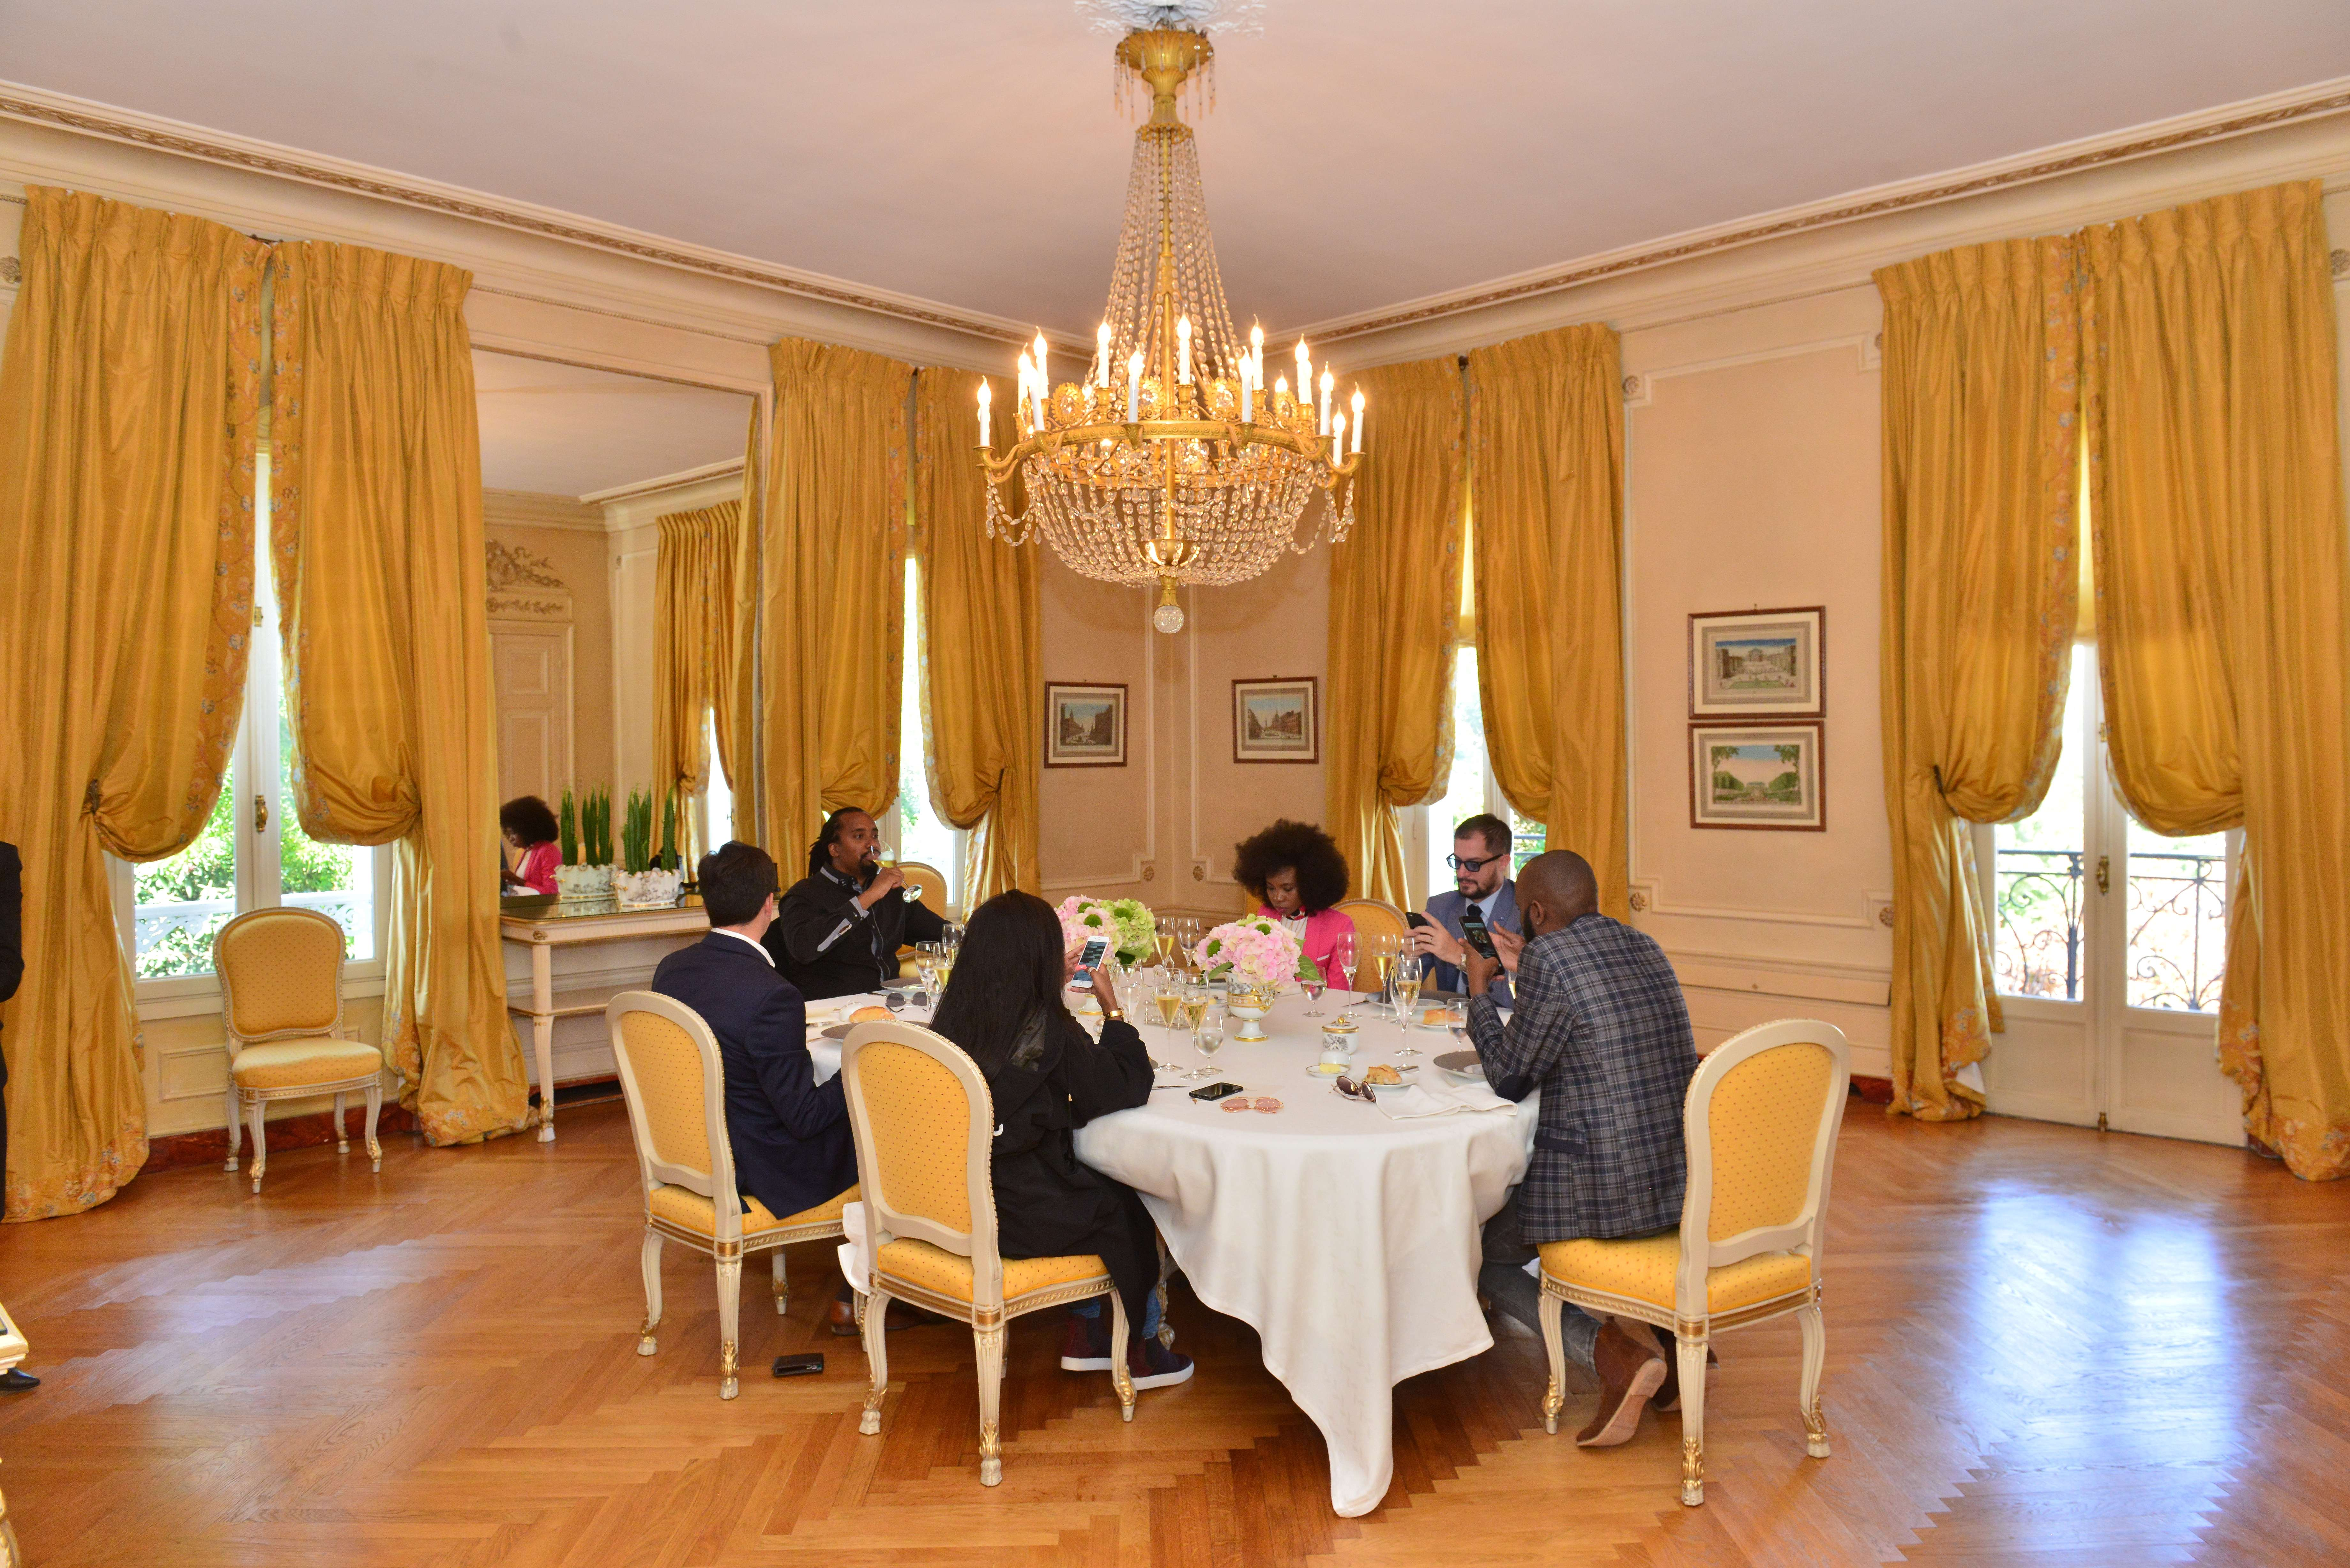 Lunch at the Chateau